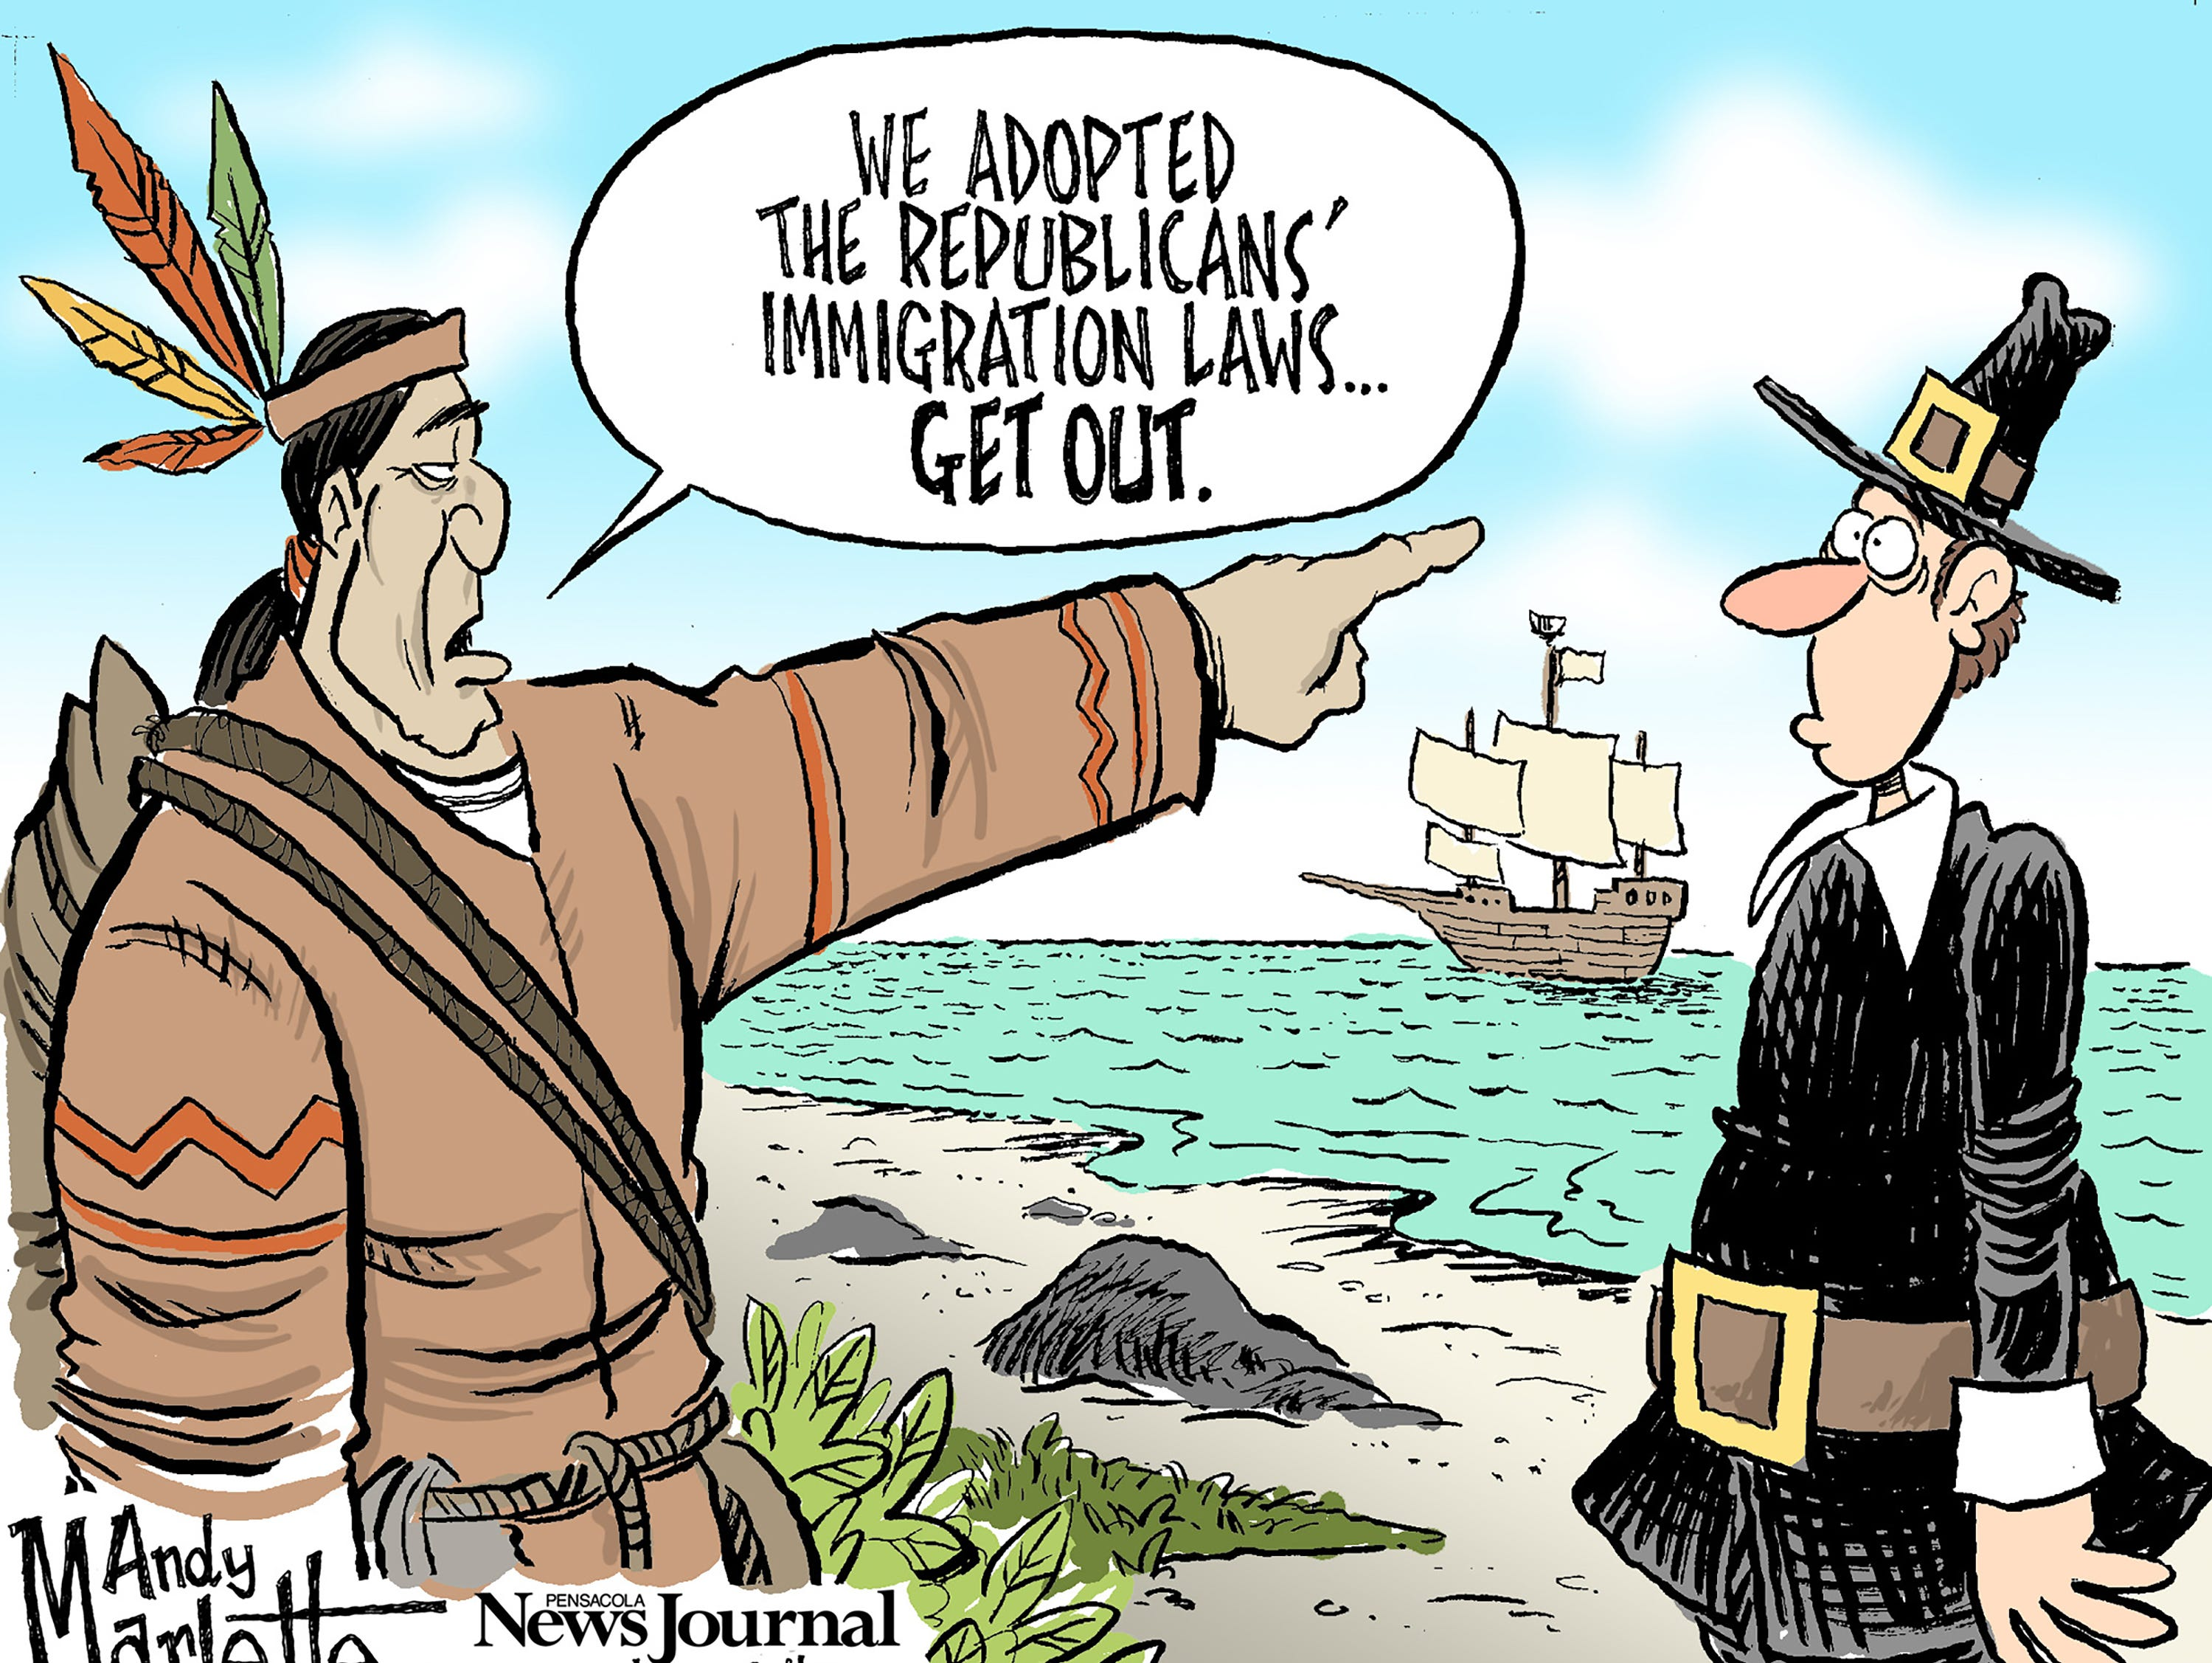 Originally published in 2011. The cartoonist's homepage, pnj.com/opinion